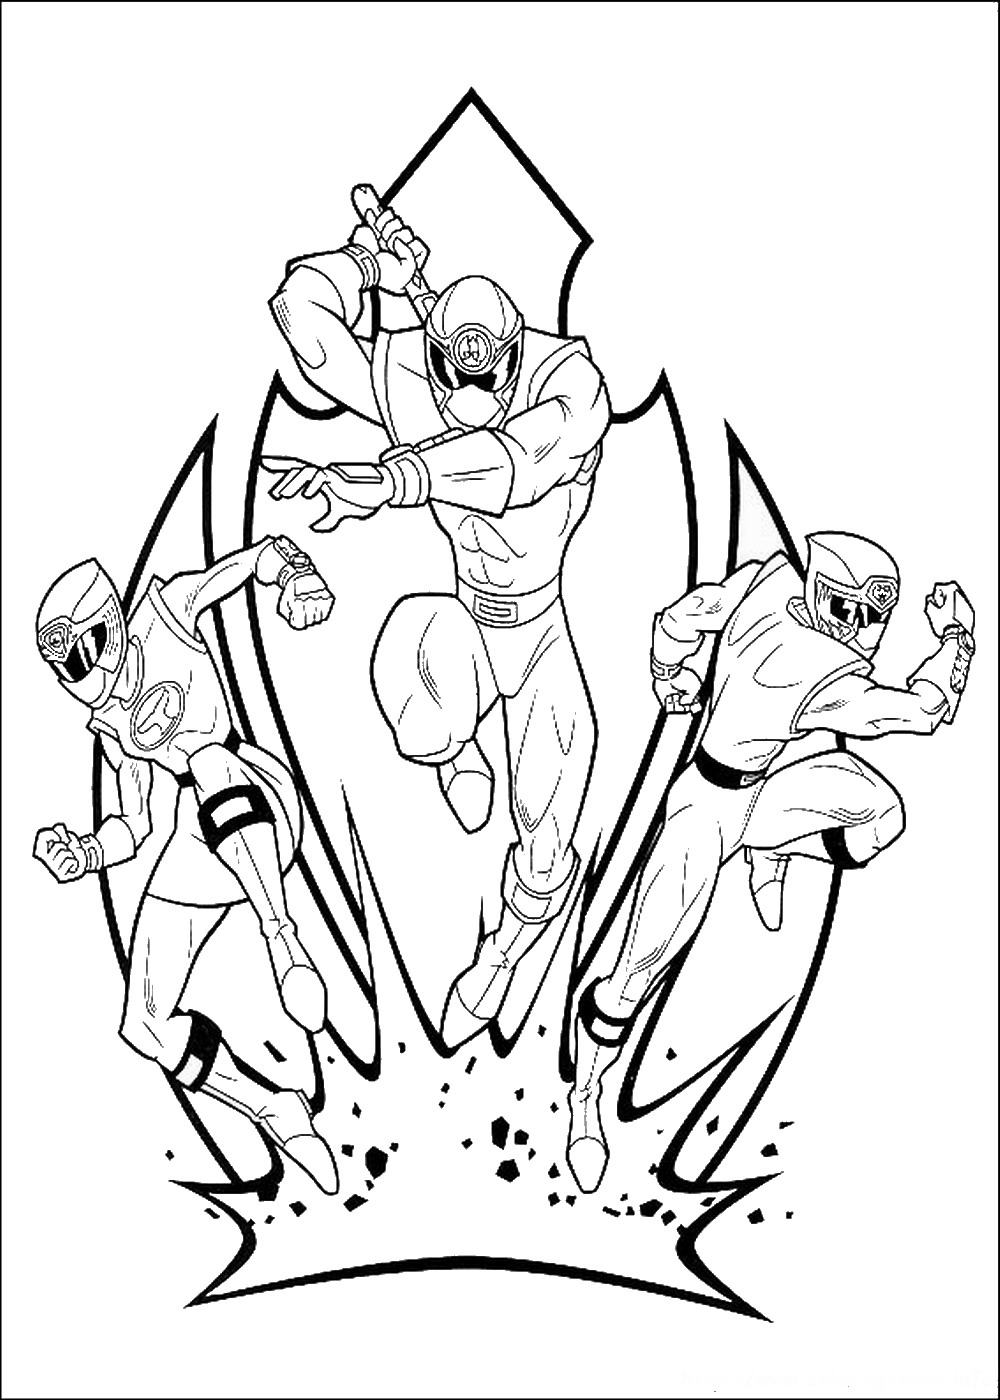 power rangers pictures to color power rangers coloring pages to power color rangers pictures